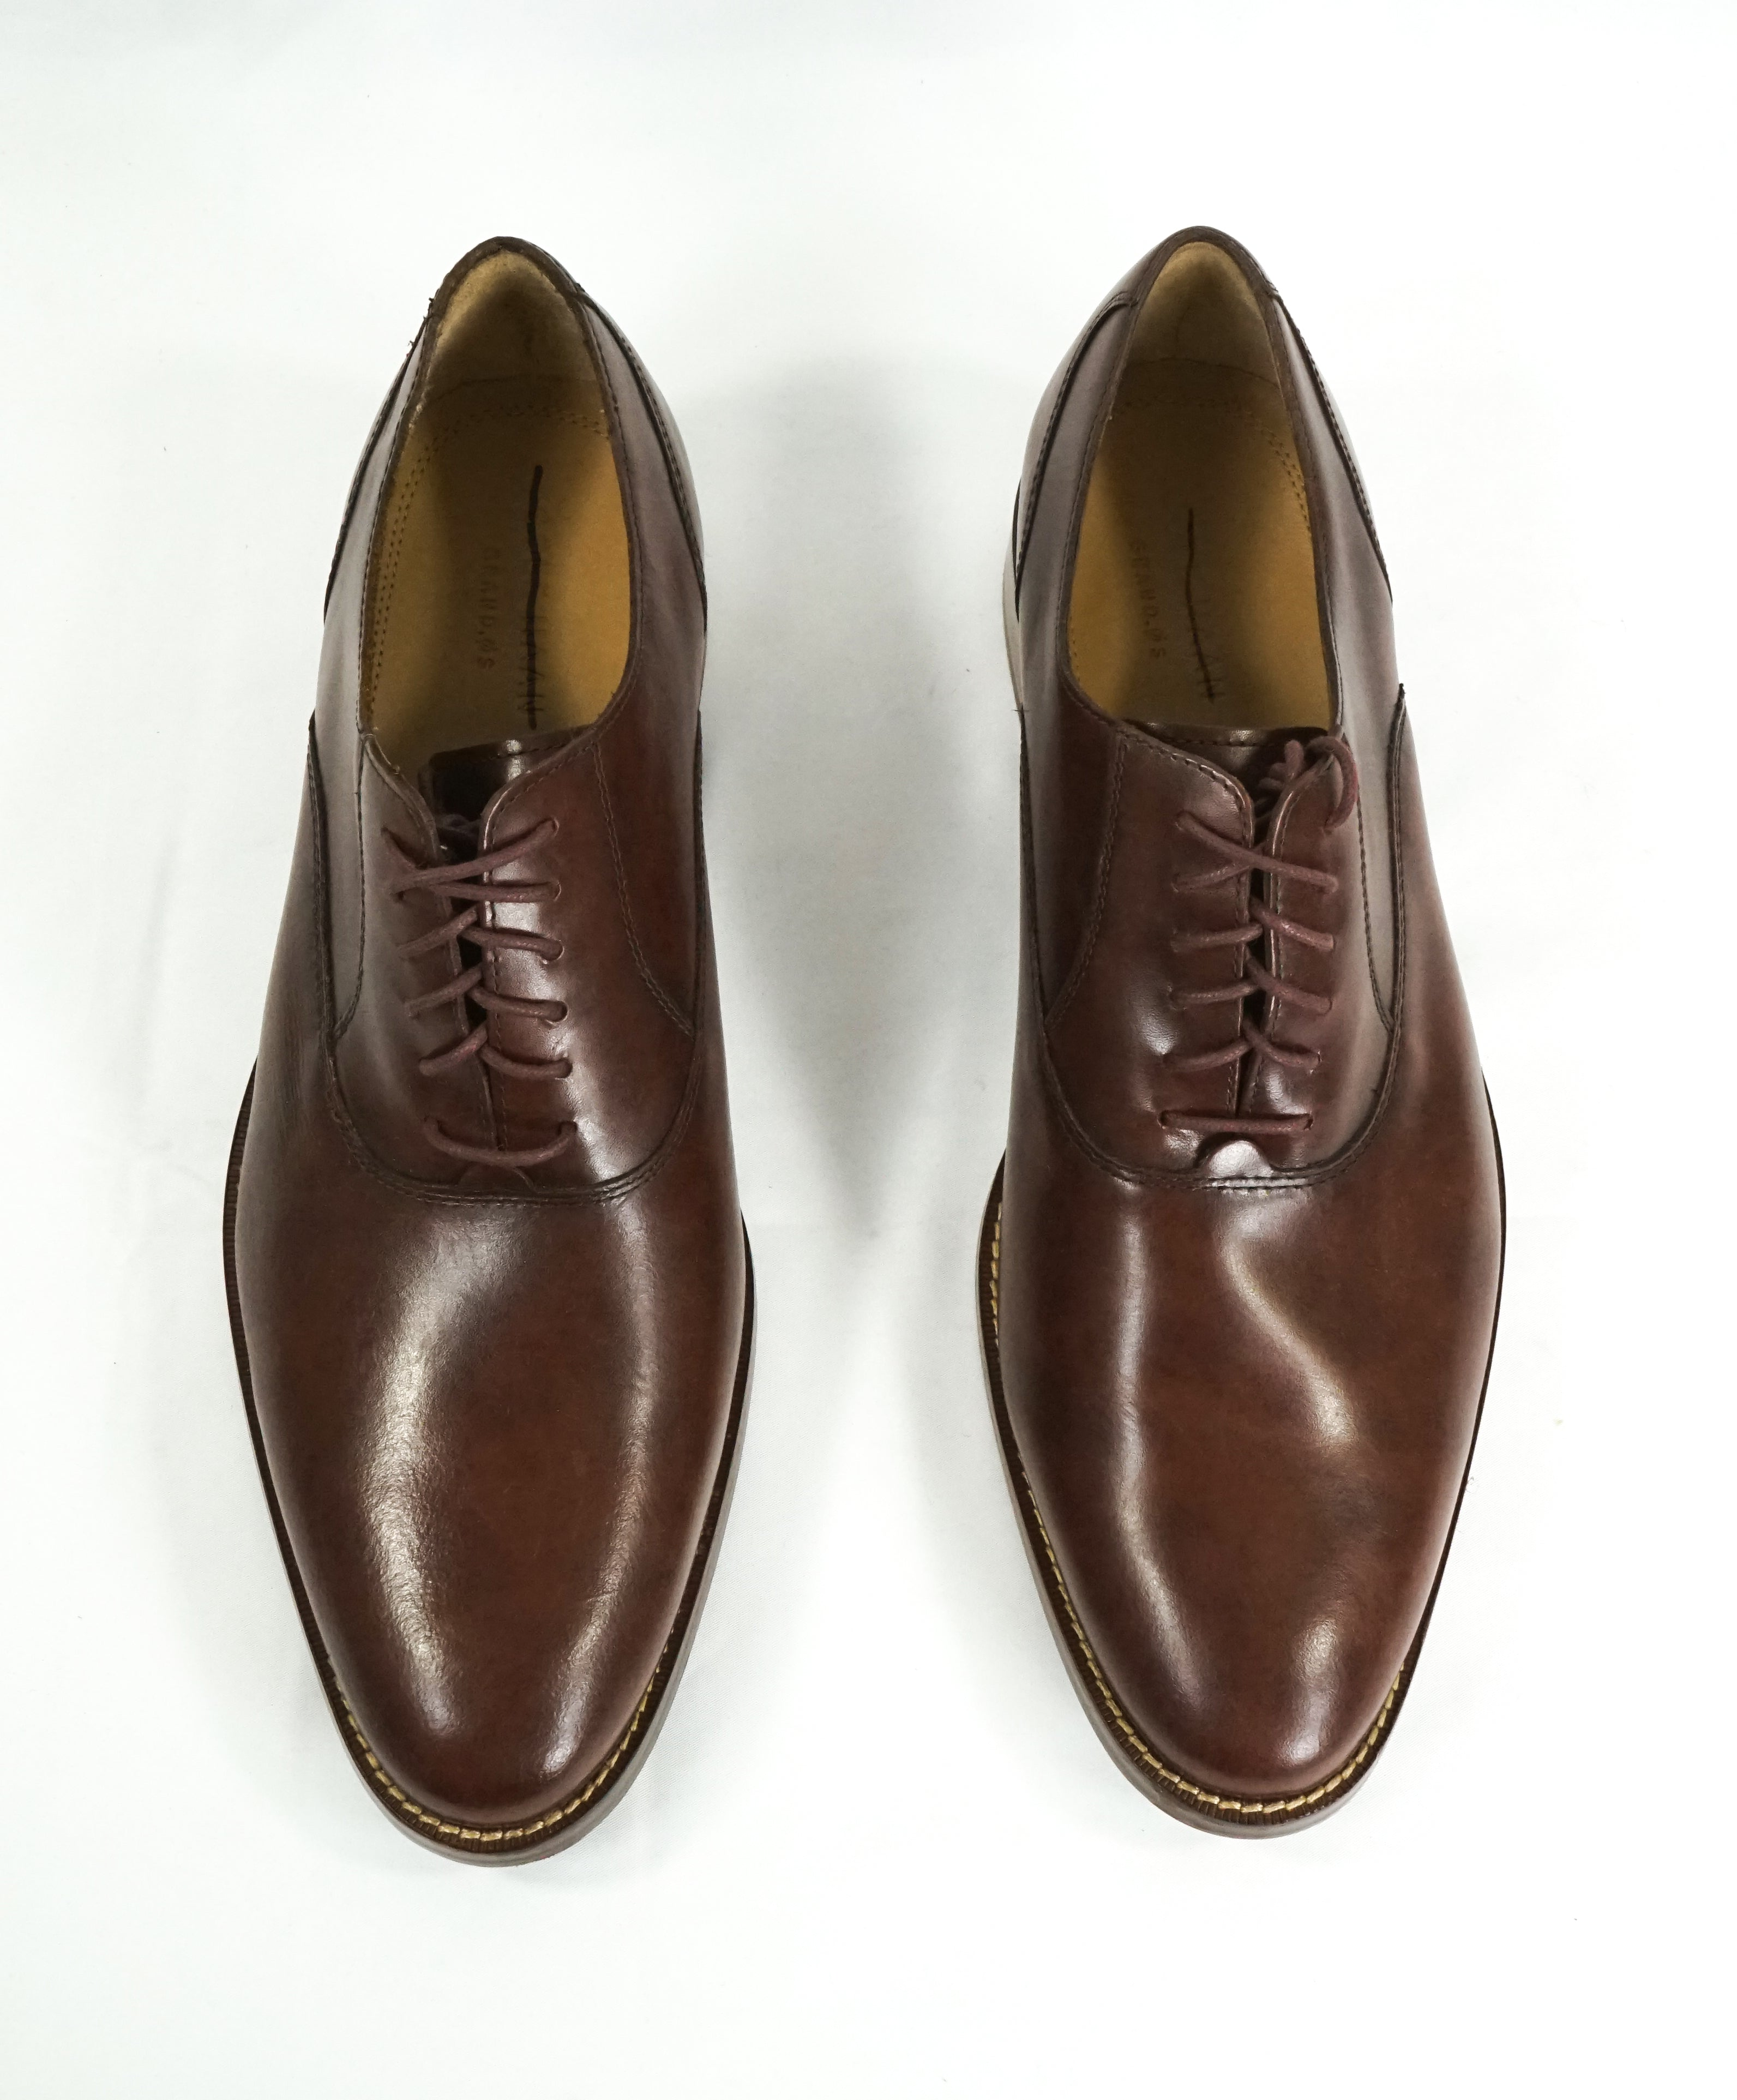 COLE HAAN - Grand OS Sleek Silhouette Brown Oxfords Padded Insole - 11.5